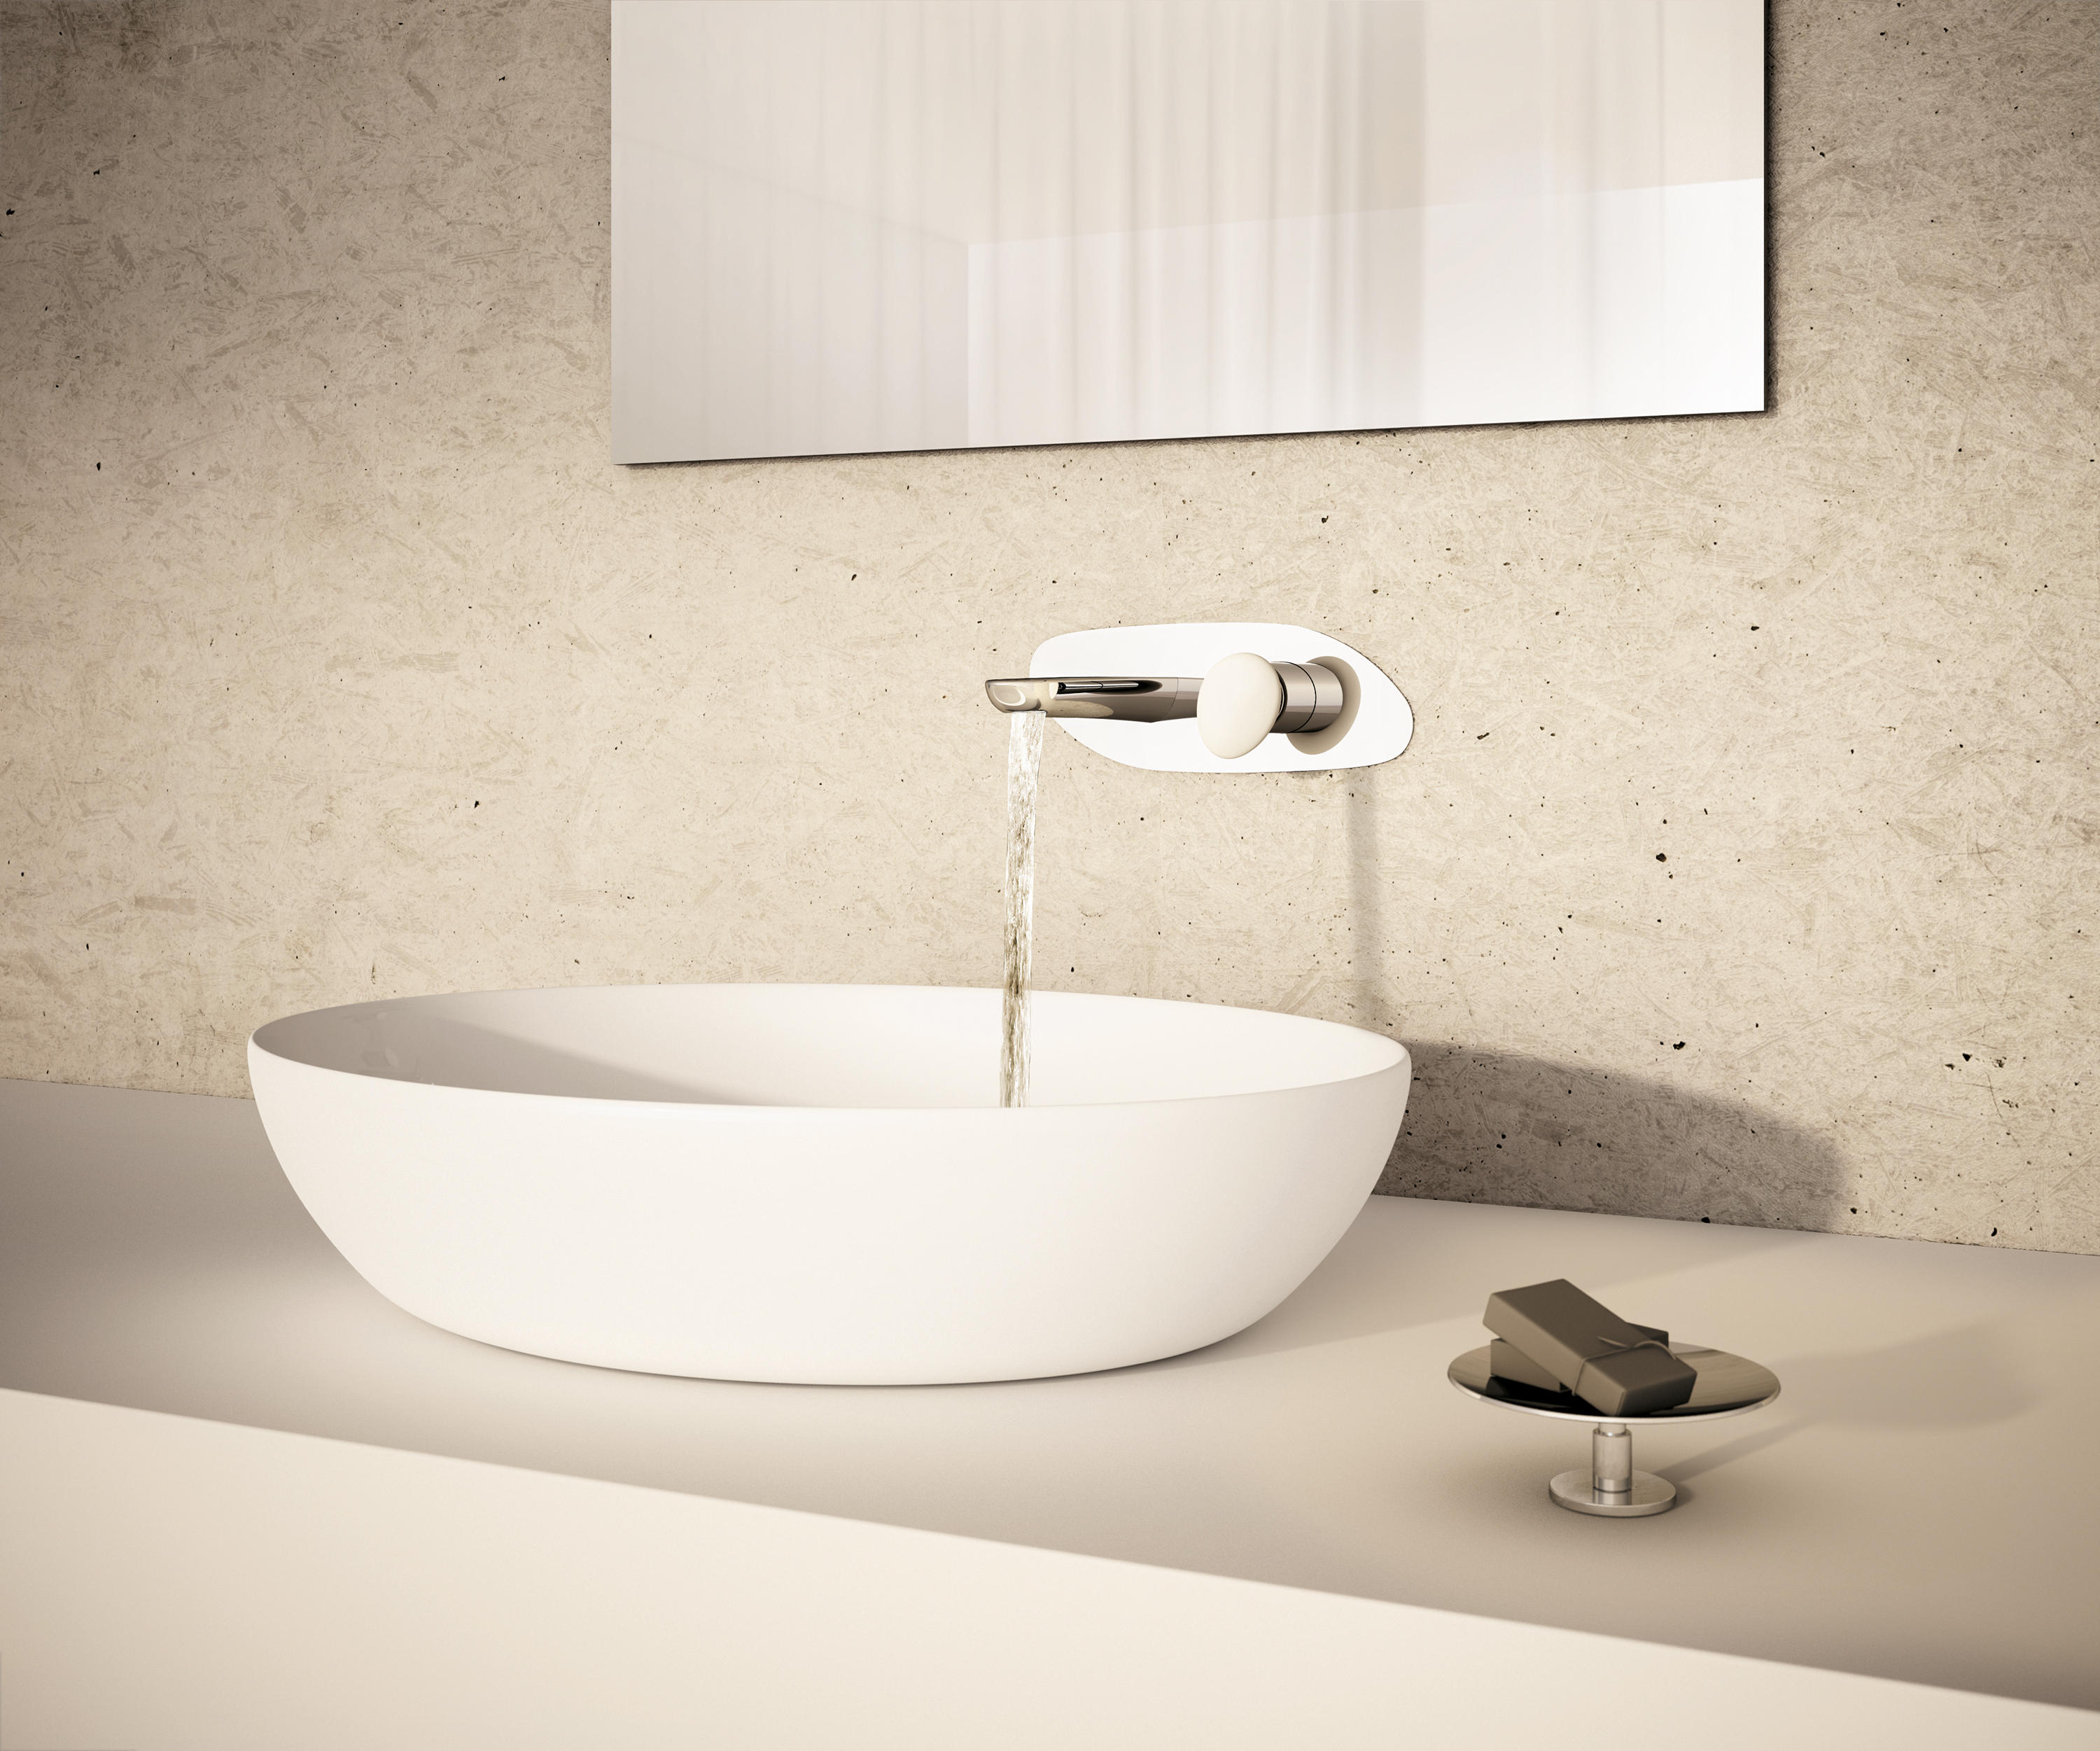 SYNERGY STONE 95 - Wash-basin taps from Fir Italia | Architonic